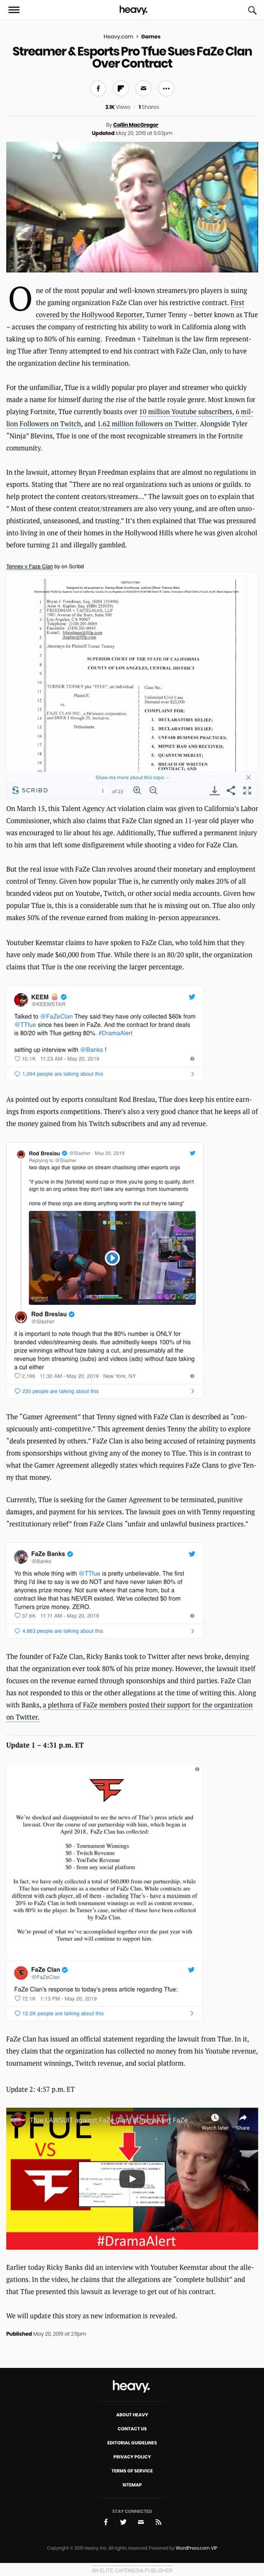 Streamer & Esports Pro Tfue Sues FaZe Clan Over Contract - article by heavy.com